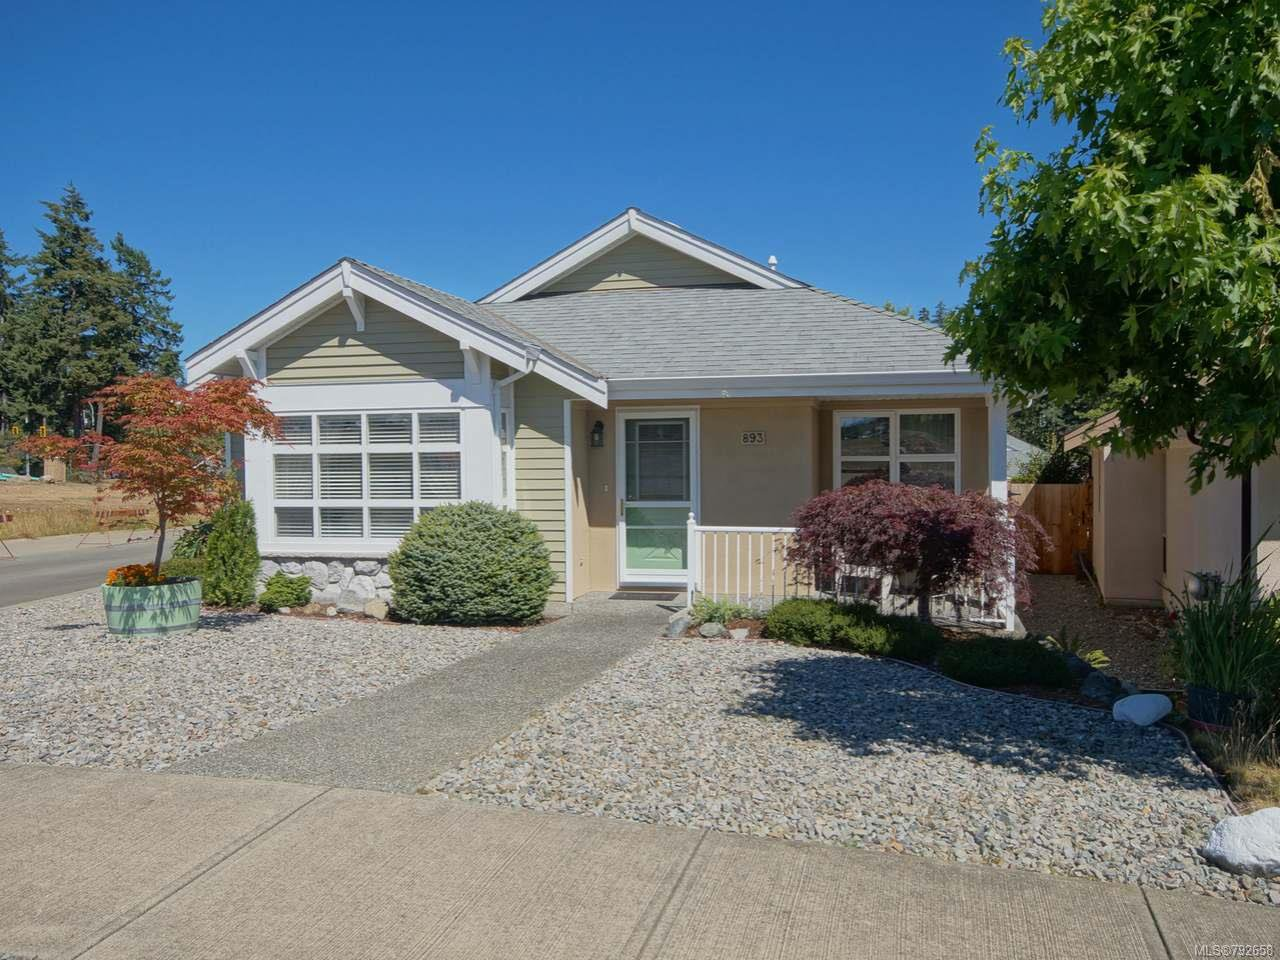 Main Photo: 893 EDGEWARE Avenue in PARKSVILLE: PQ Parksville House for sale (Parksville/Qualicum)  : MLS®# 792658